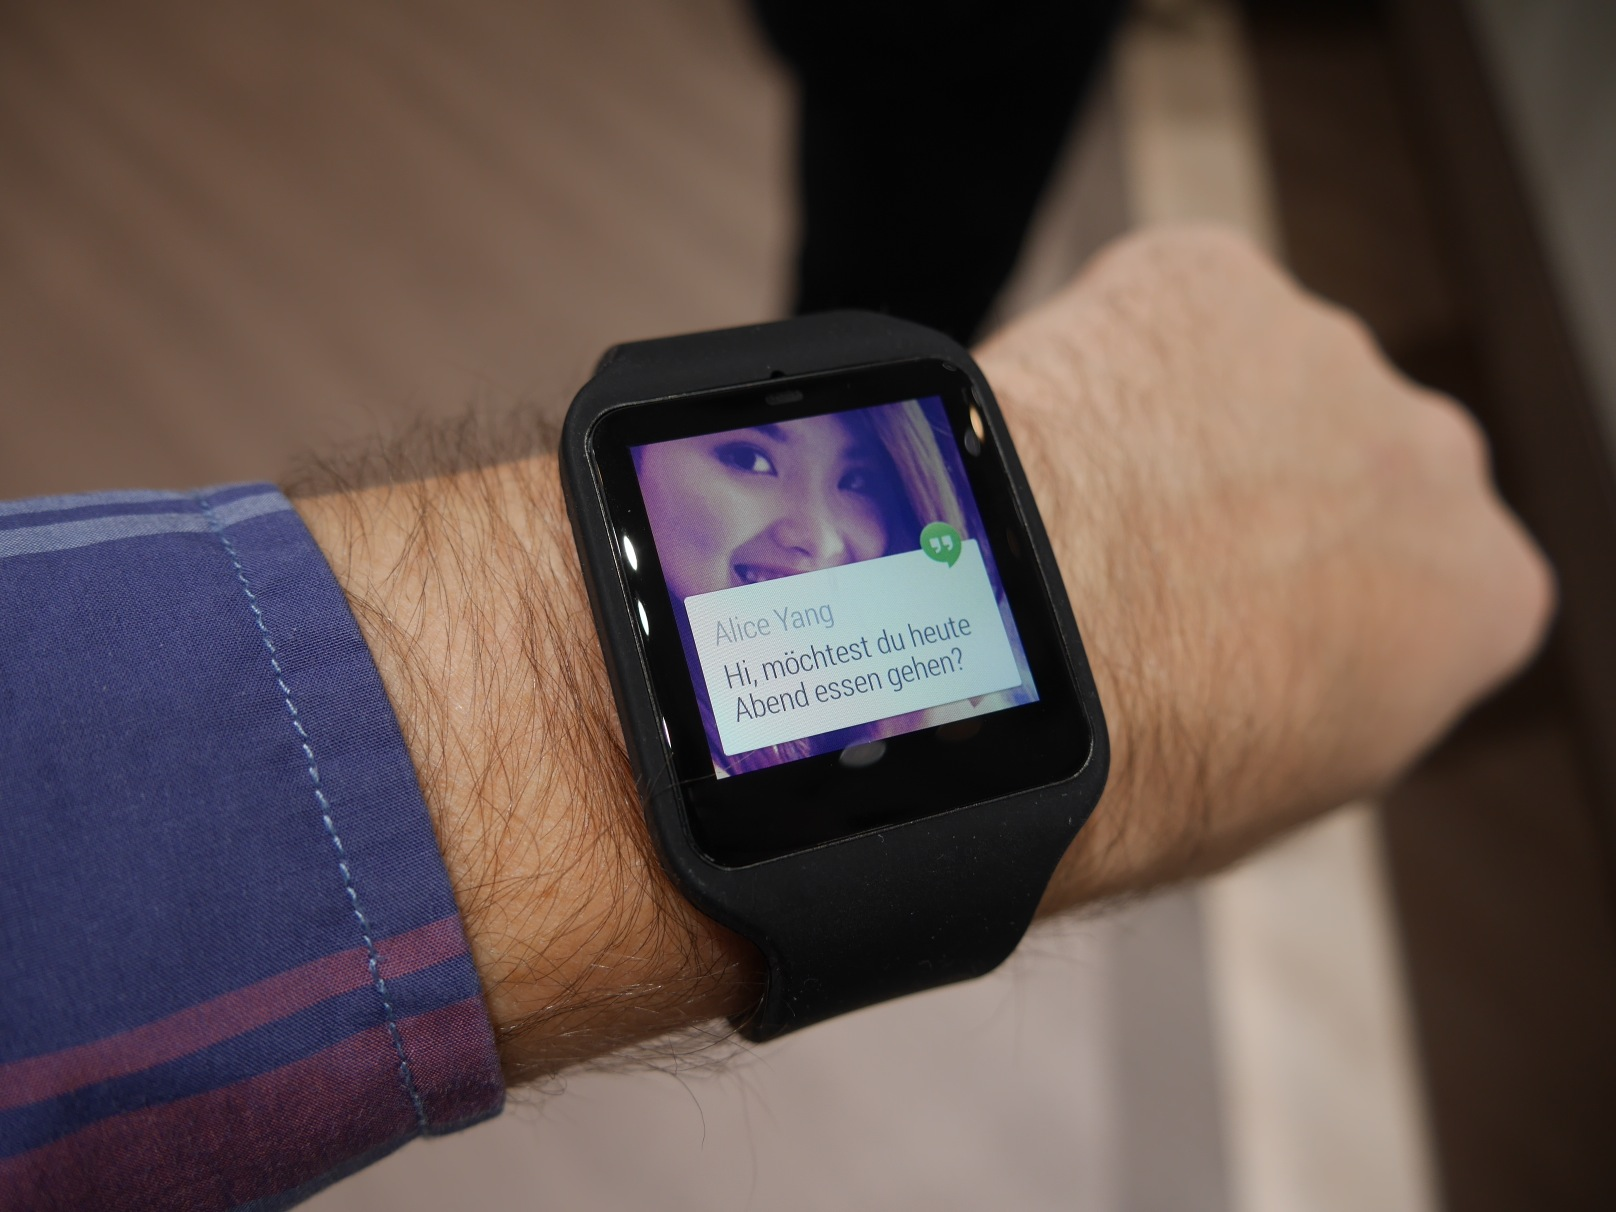 Sony SmartWatch 3: Should you wear it?